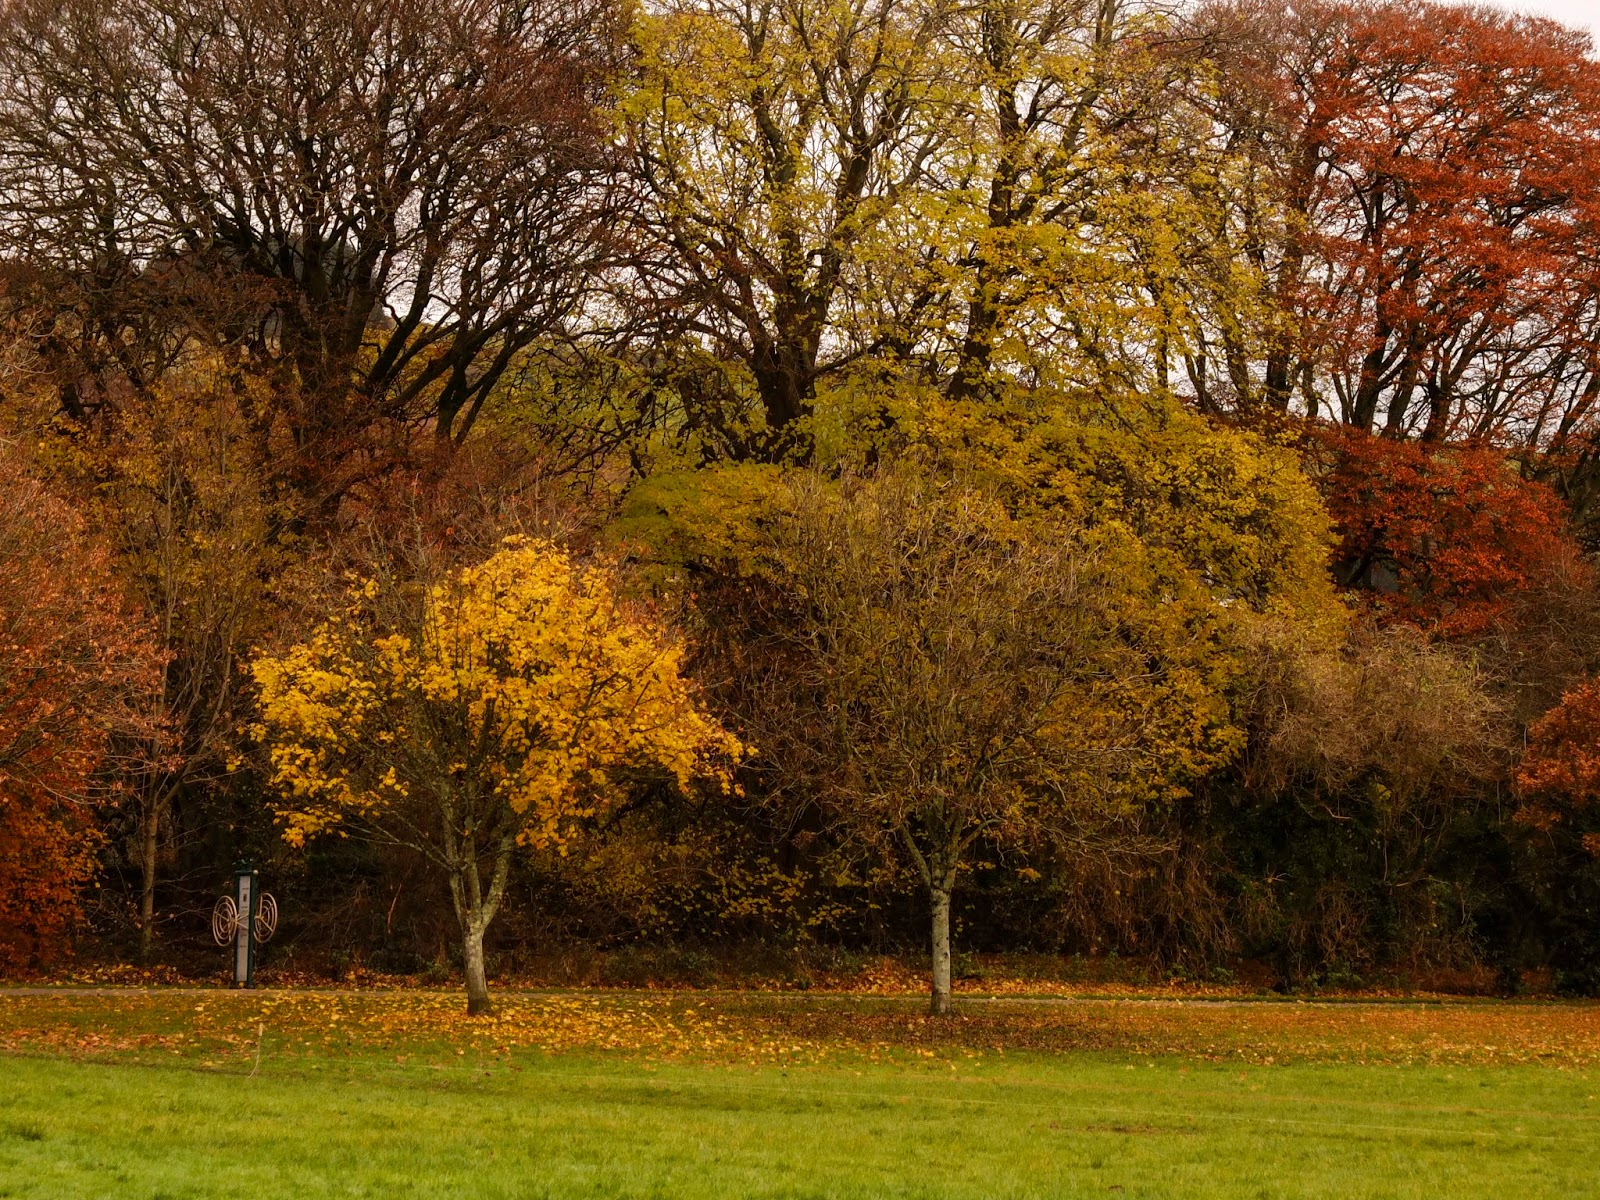 Four trees in a row with different colour foliage in Ballincollig, County Cork.